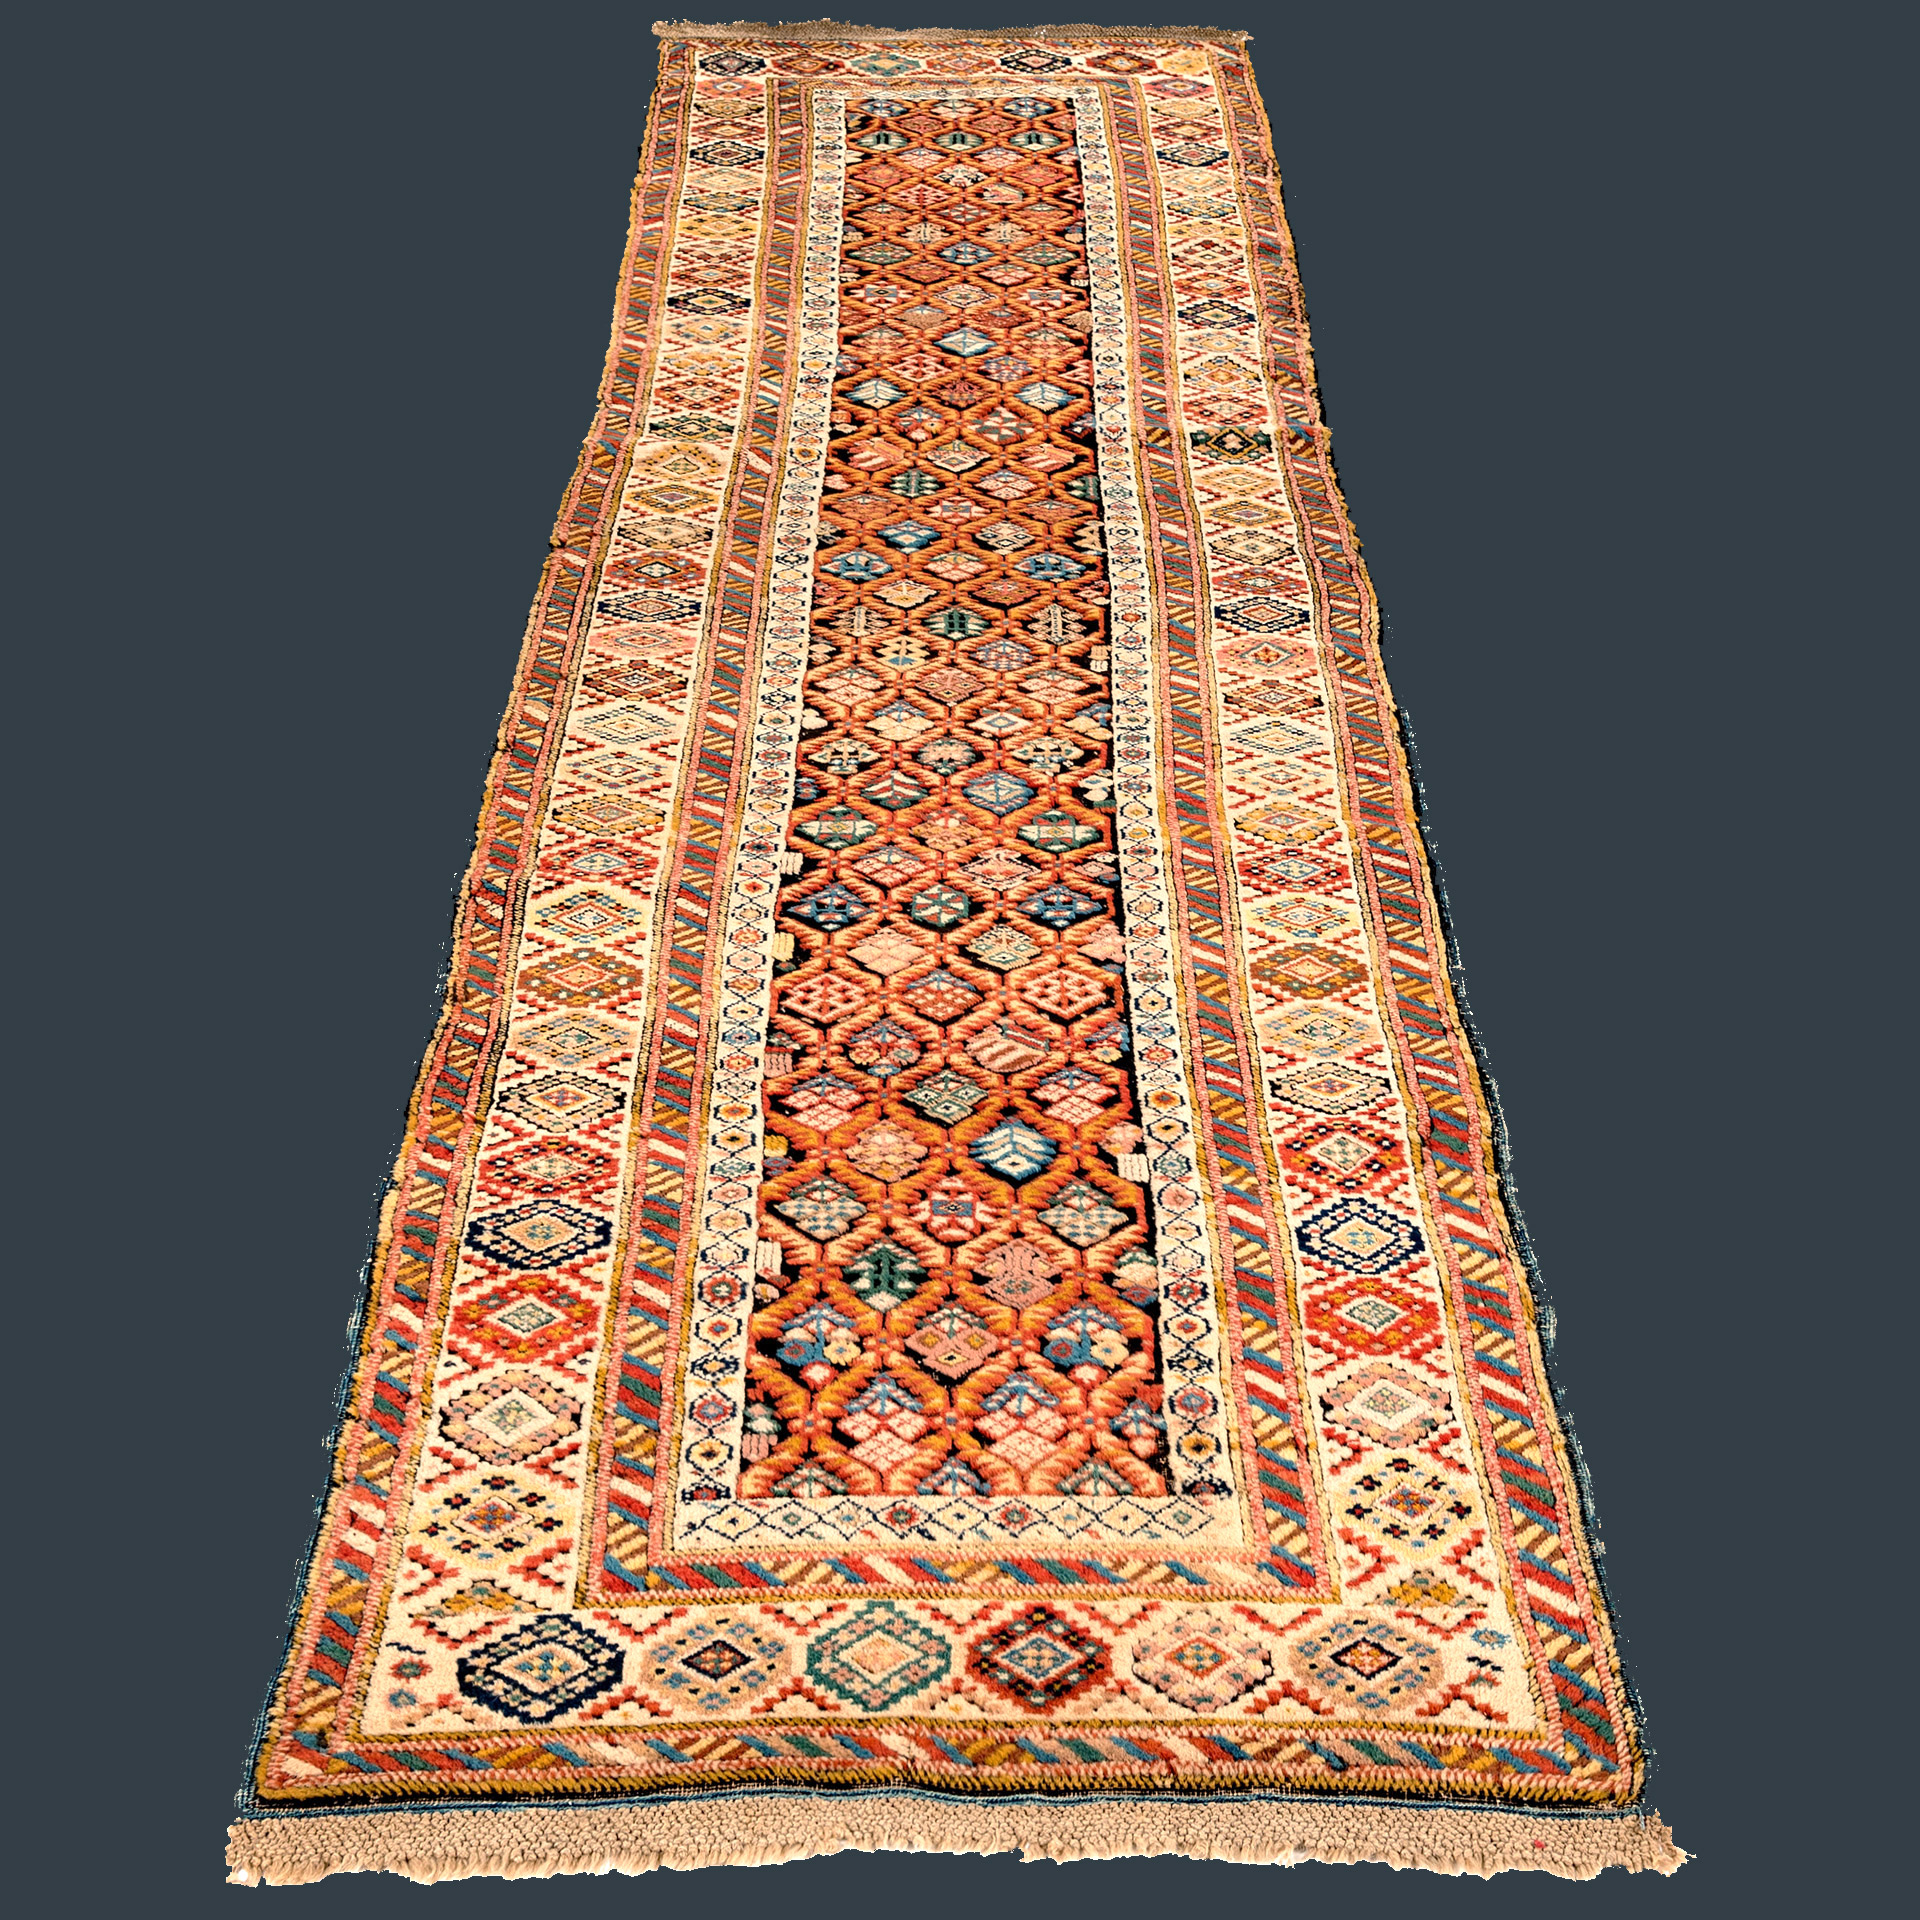 Antique Caucasian Kuba runner with oxidized brown field and lattice design framed by an ivory border